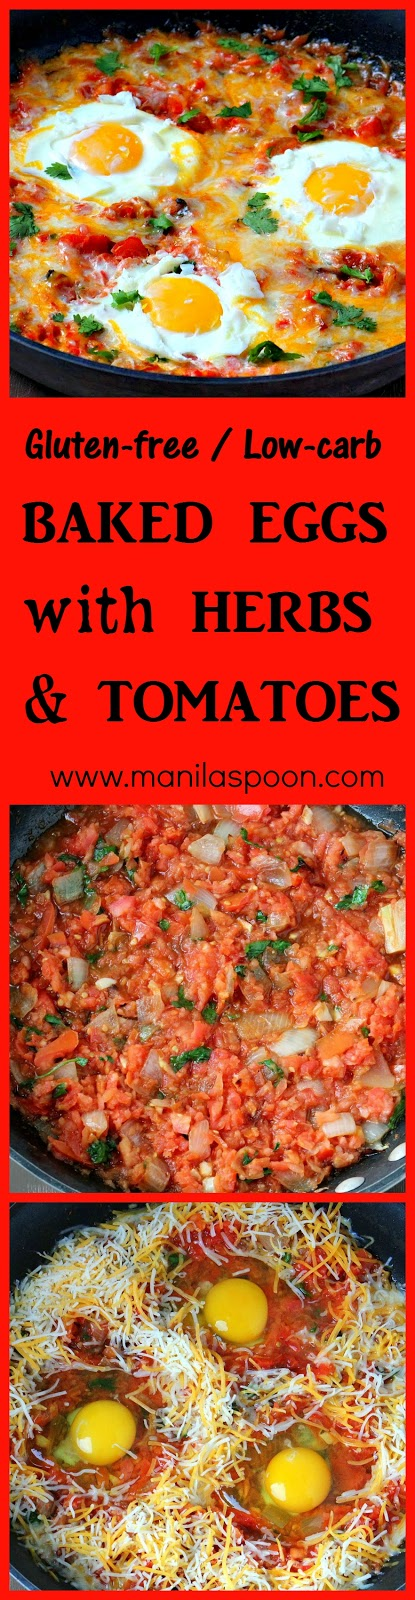 For a protein-packed, healthy and delicious breakfast - this BAKED HERBS with HERBS & TOMATOES has it all. So YUMMY, gluten-free and low-carb, too!